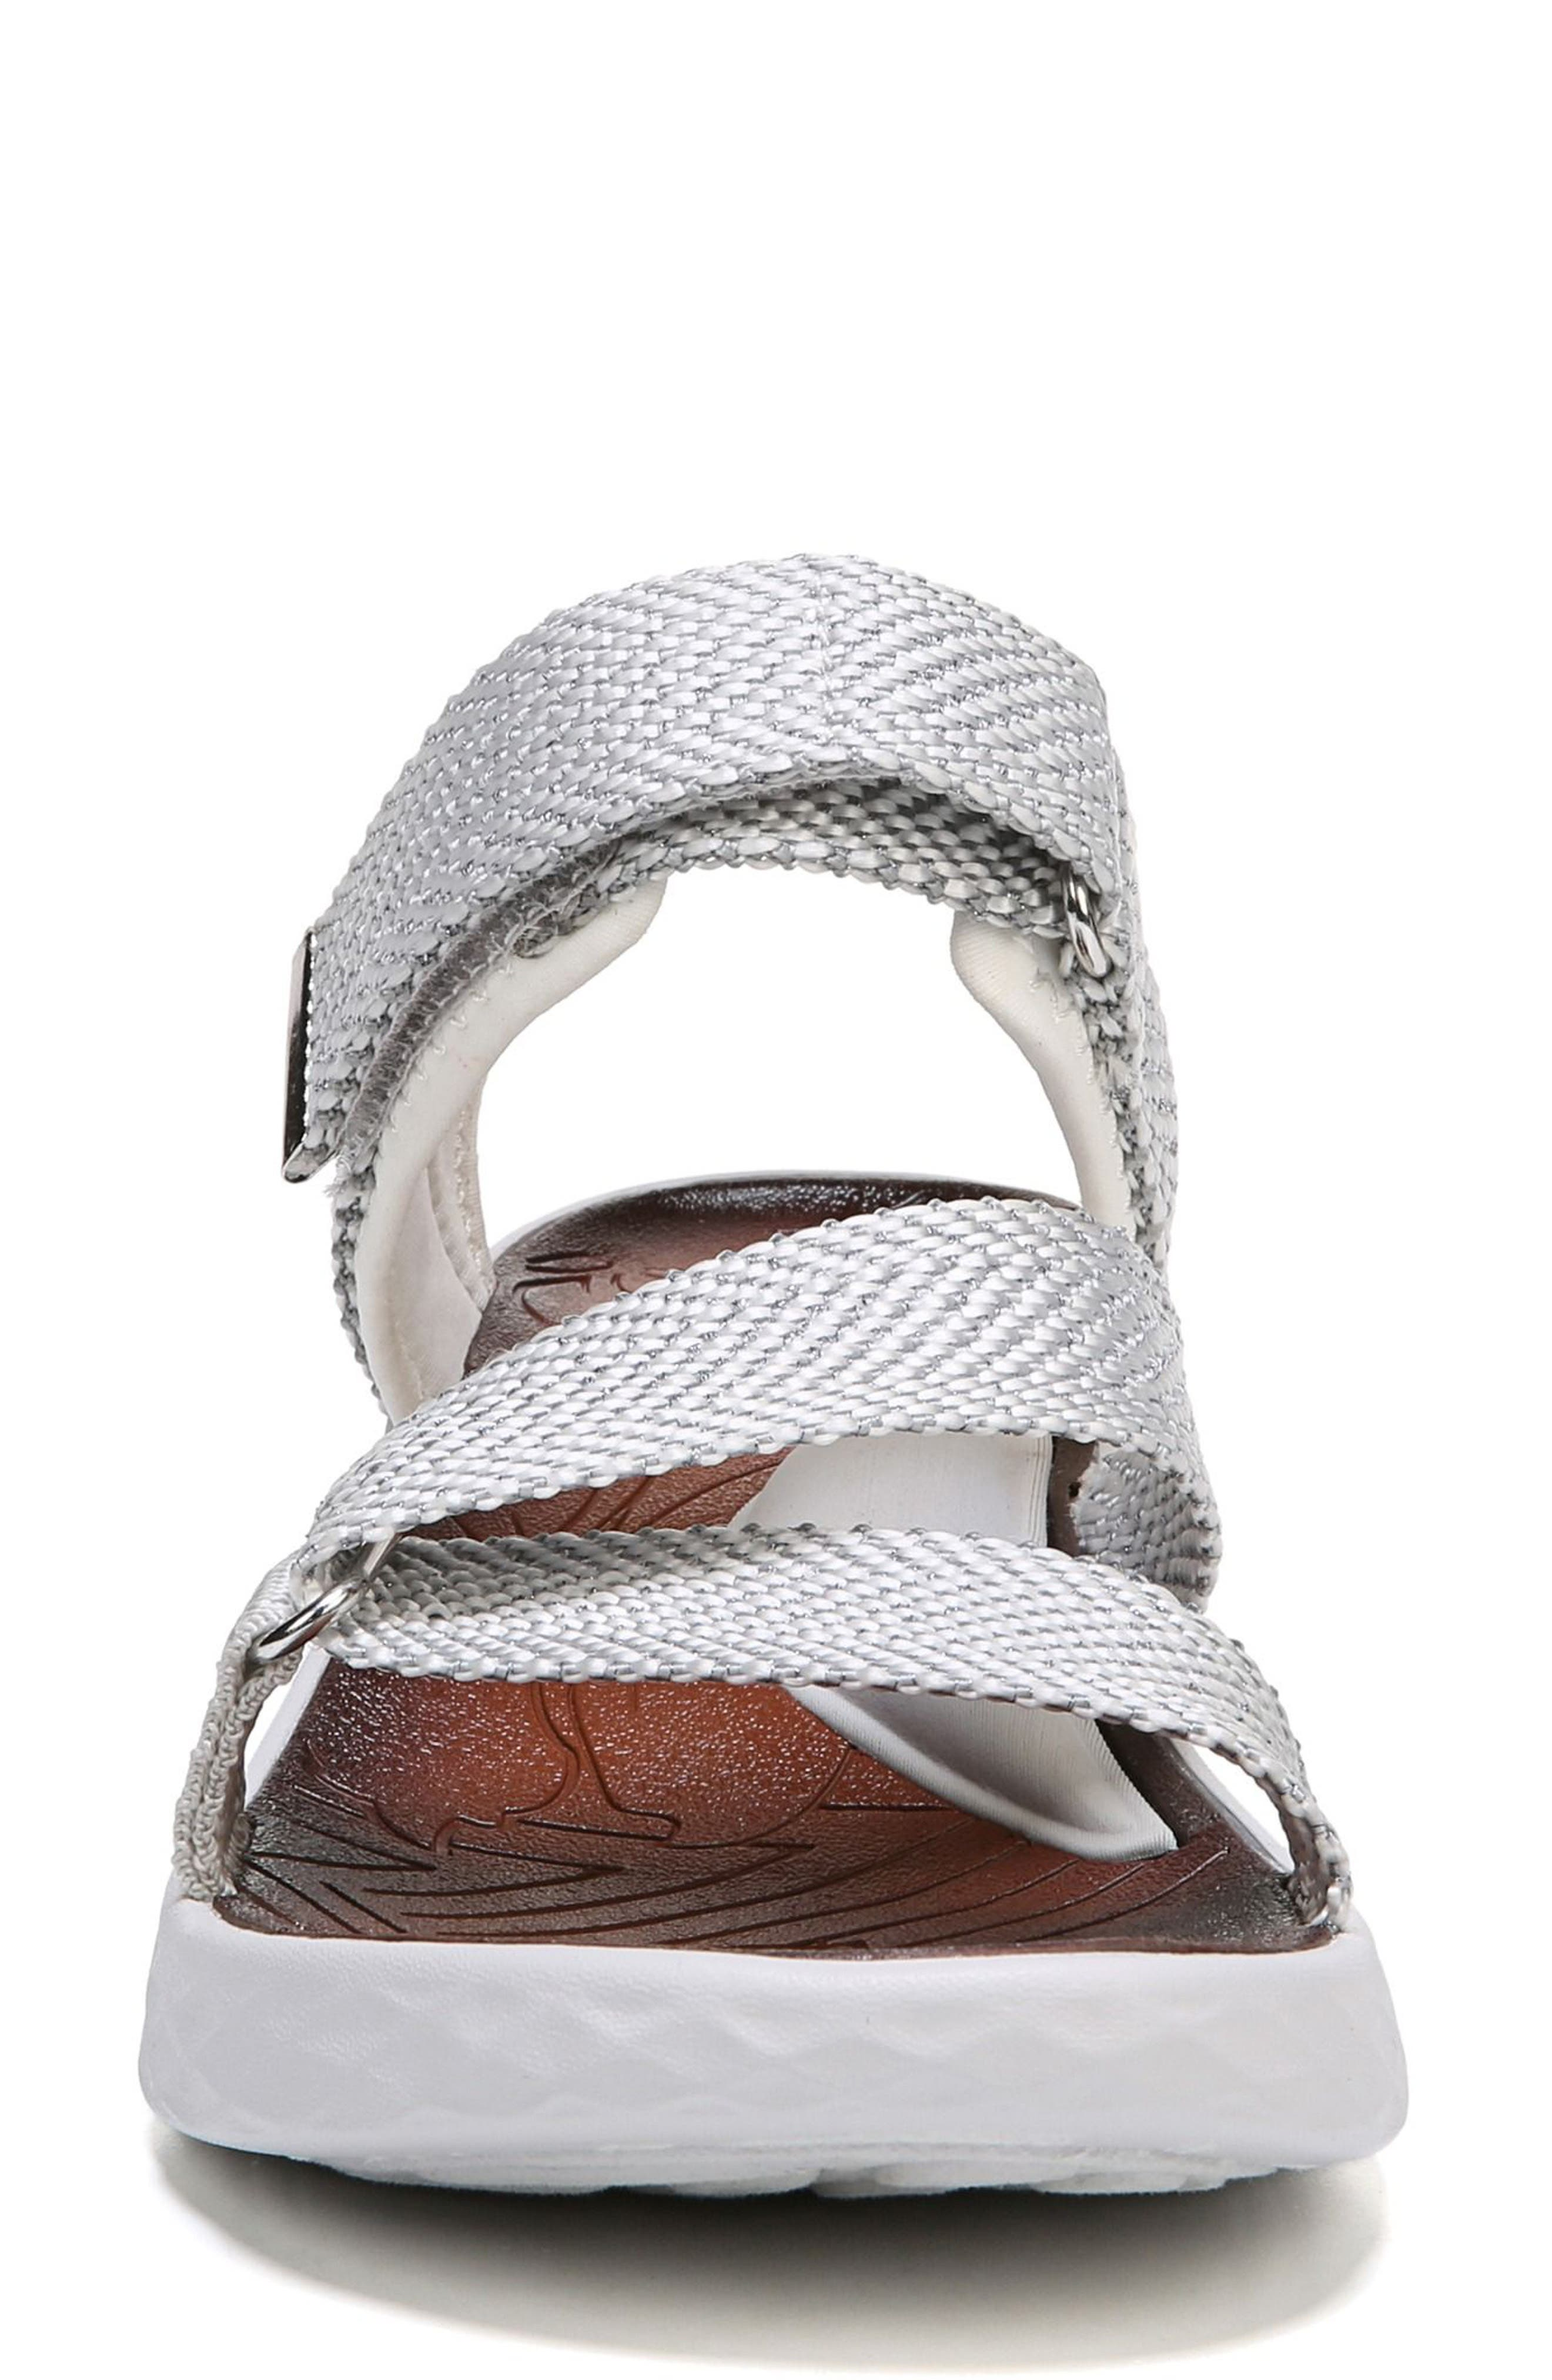 Jive Sandal,                             Alternate thumbnail 5, color,                             White Fabric